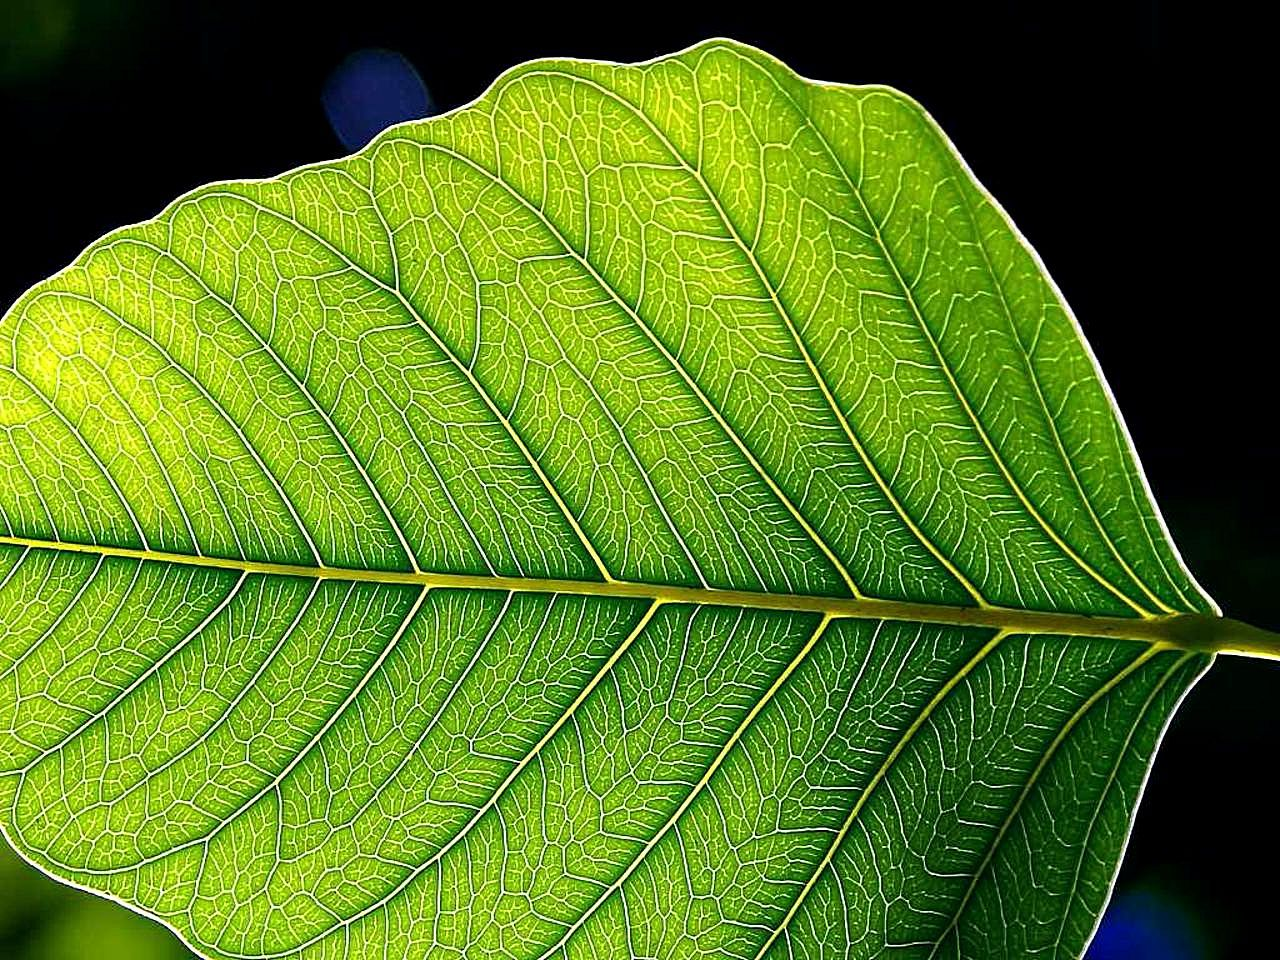 File:Green leaf leaves.jpg